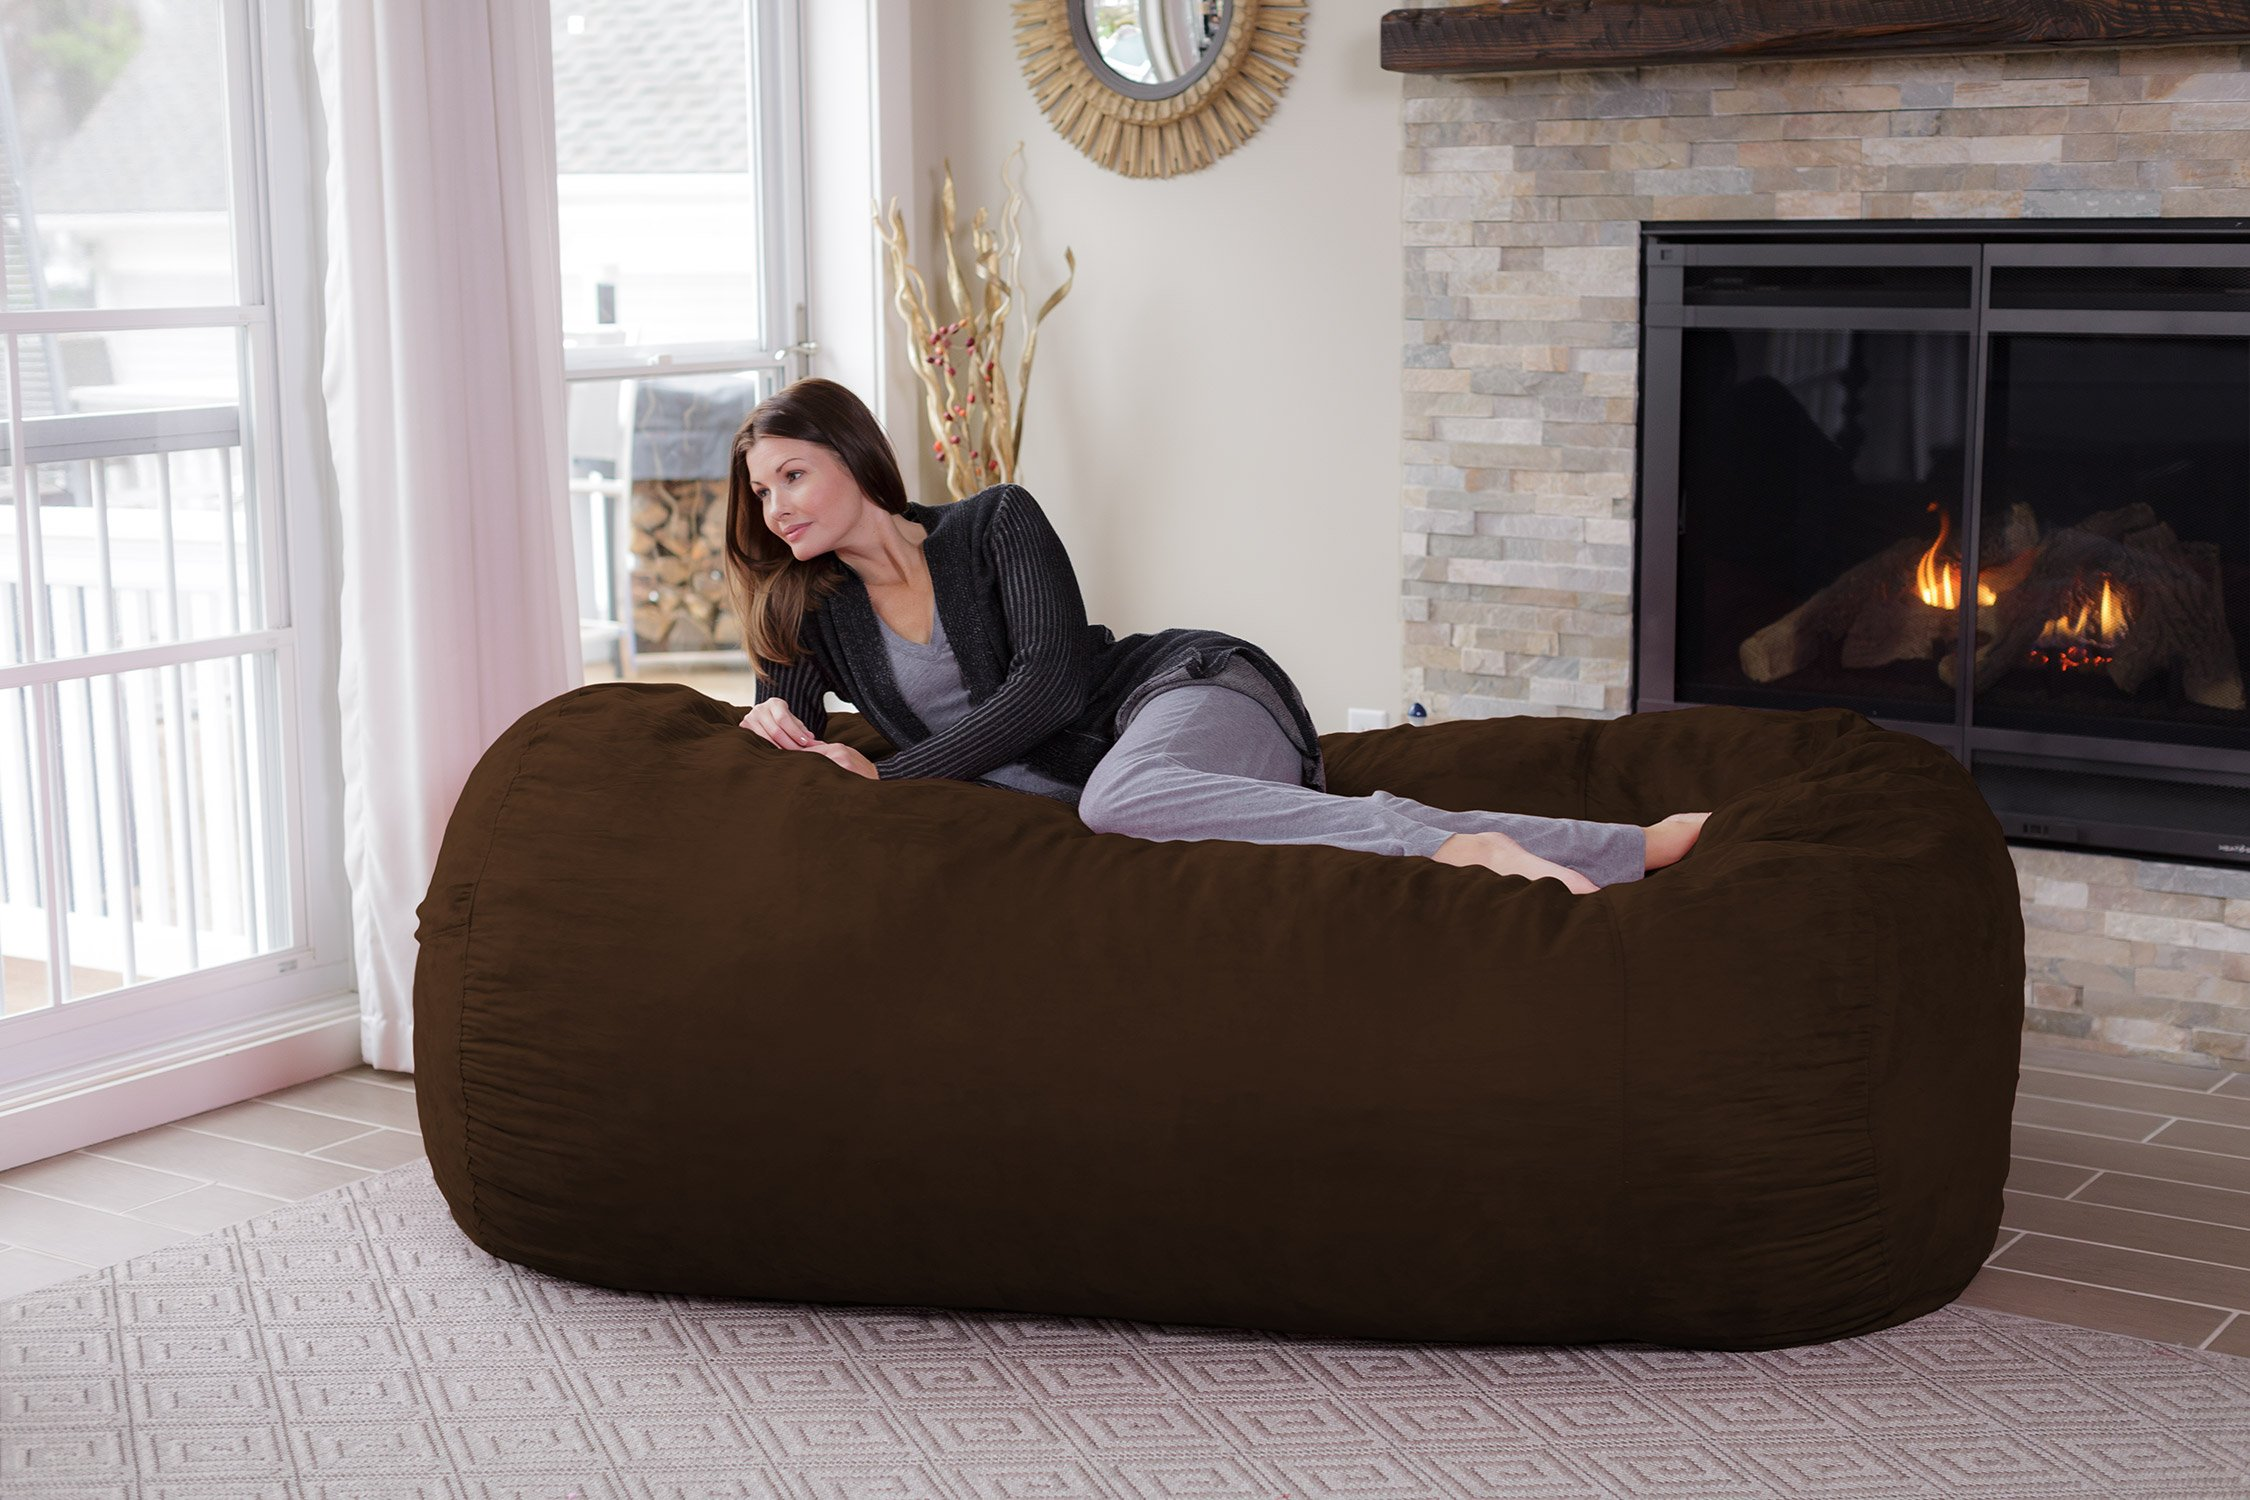 Chill Sack Memory Foam Bean Bag Lounger, 7.5-Feet, Chocolate by Chill Sack (Image #4)